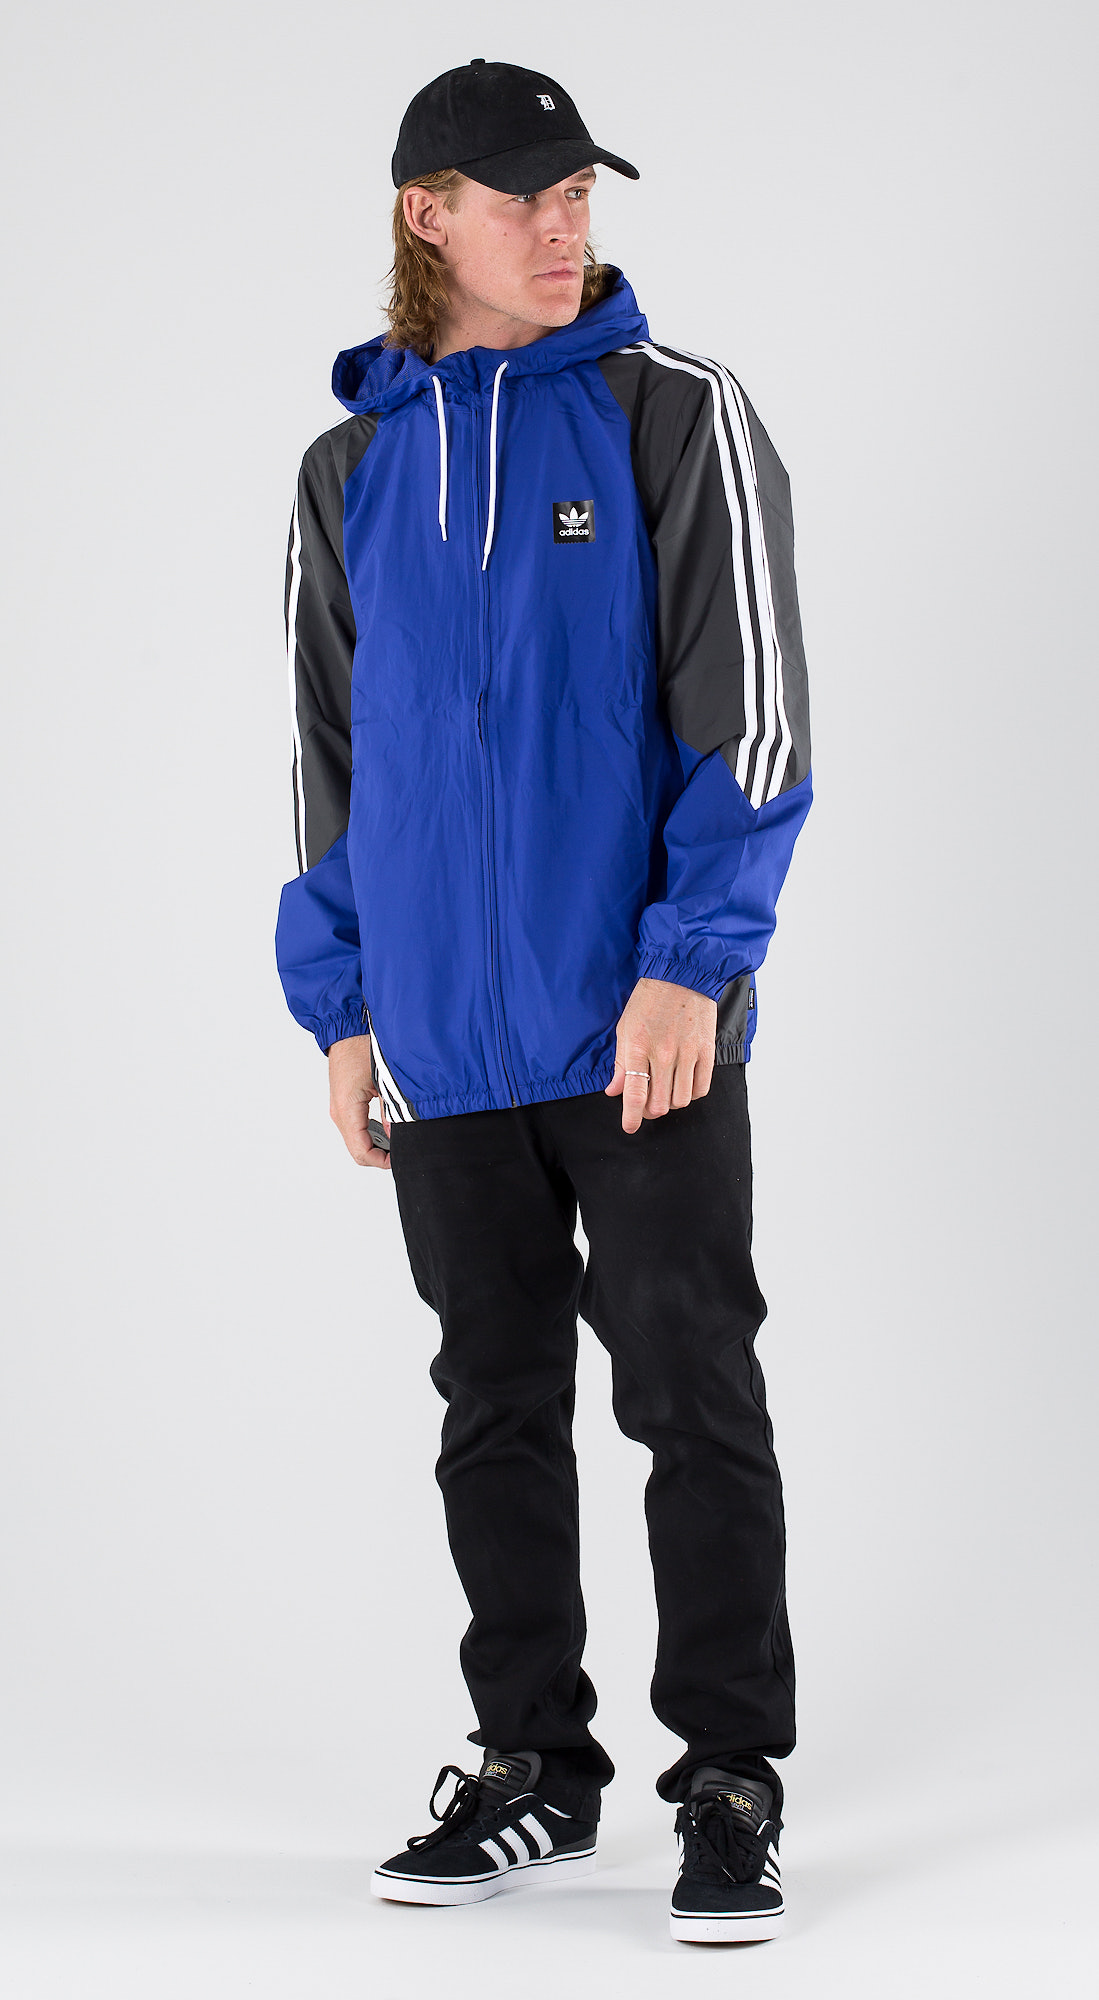 825172419 Adidas Skateboarding Insley Jacket Active Blue/Dgh Solid Grey/White ...